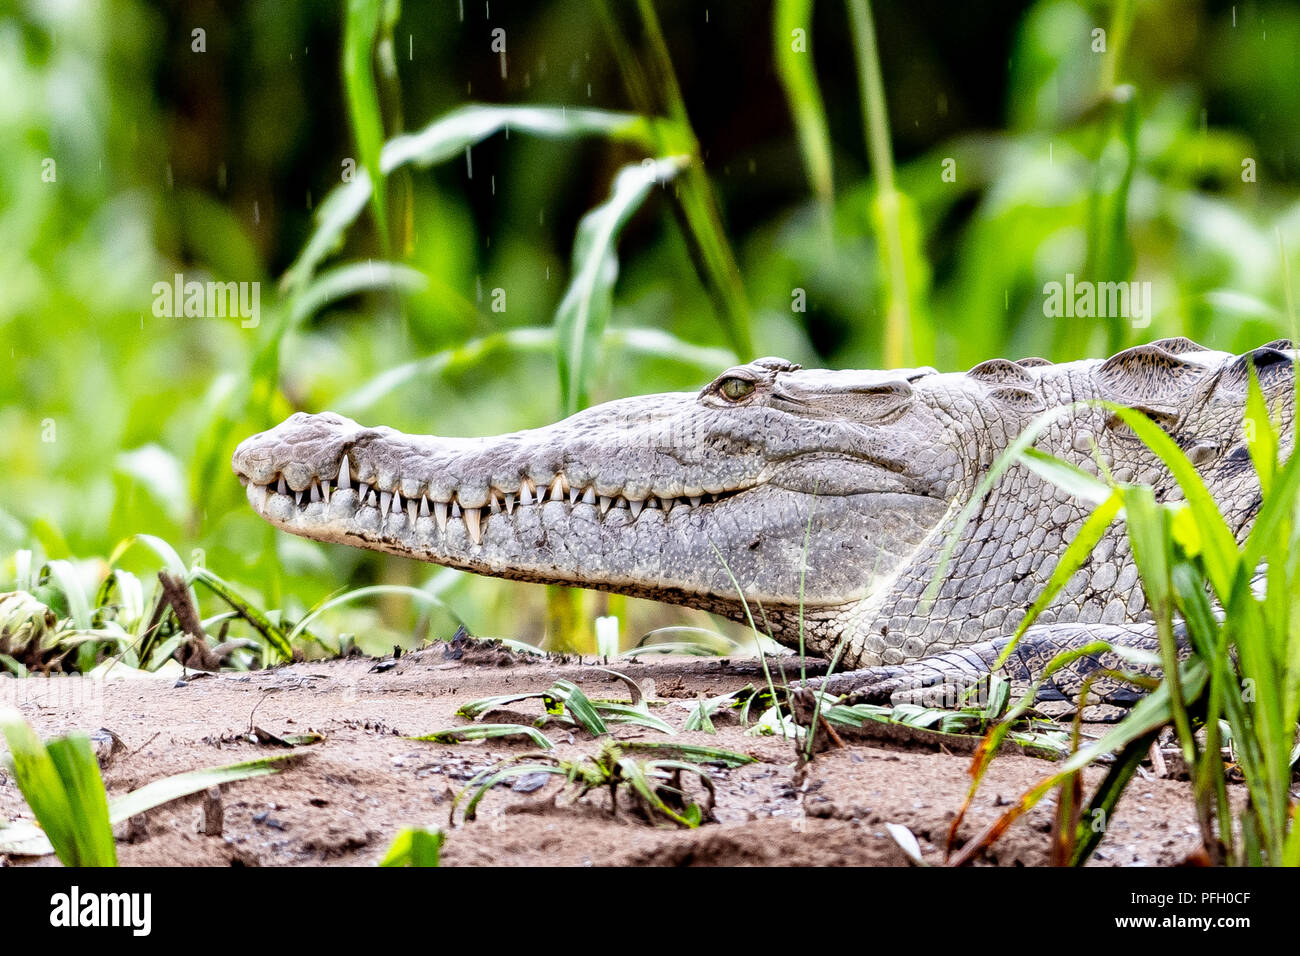 An alligator on the riverbank of Rio San Carlos. - Stock Image